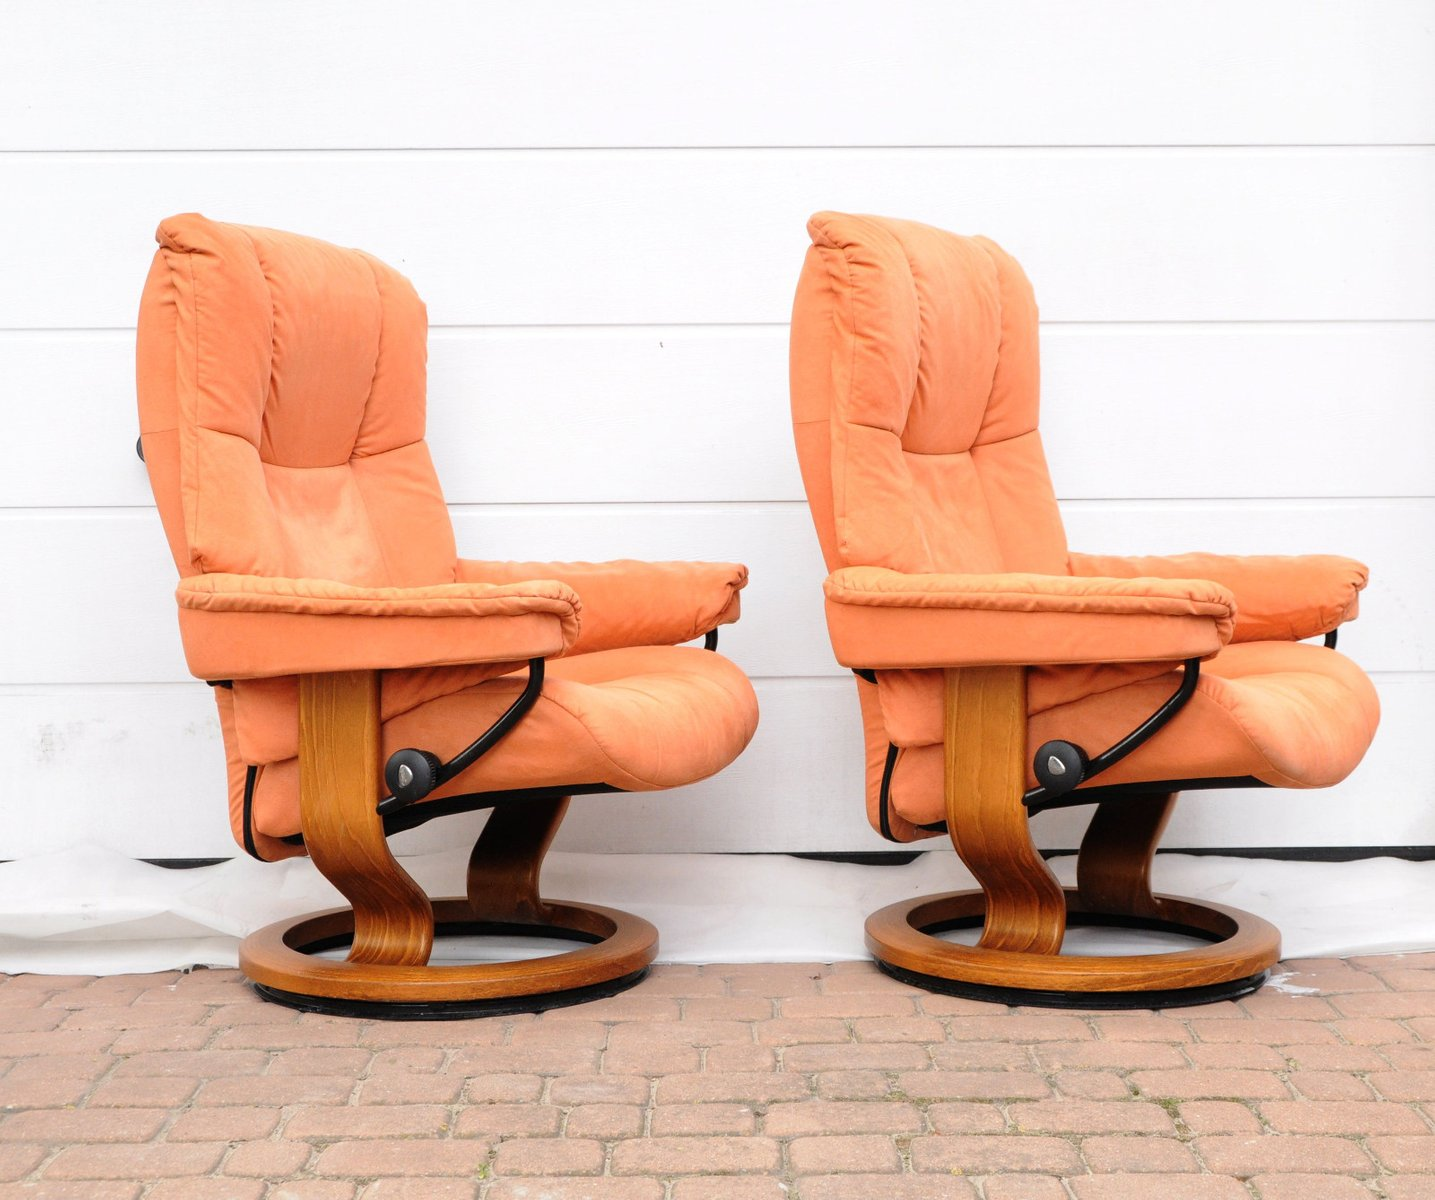 Stressless Sessel John Mbel Schulenburg Stressless Sessel Furniture In Knoxville